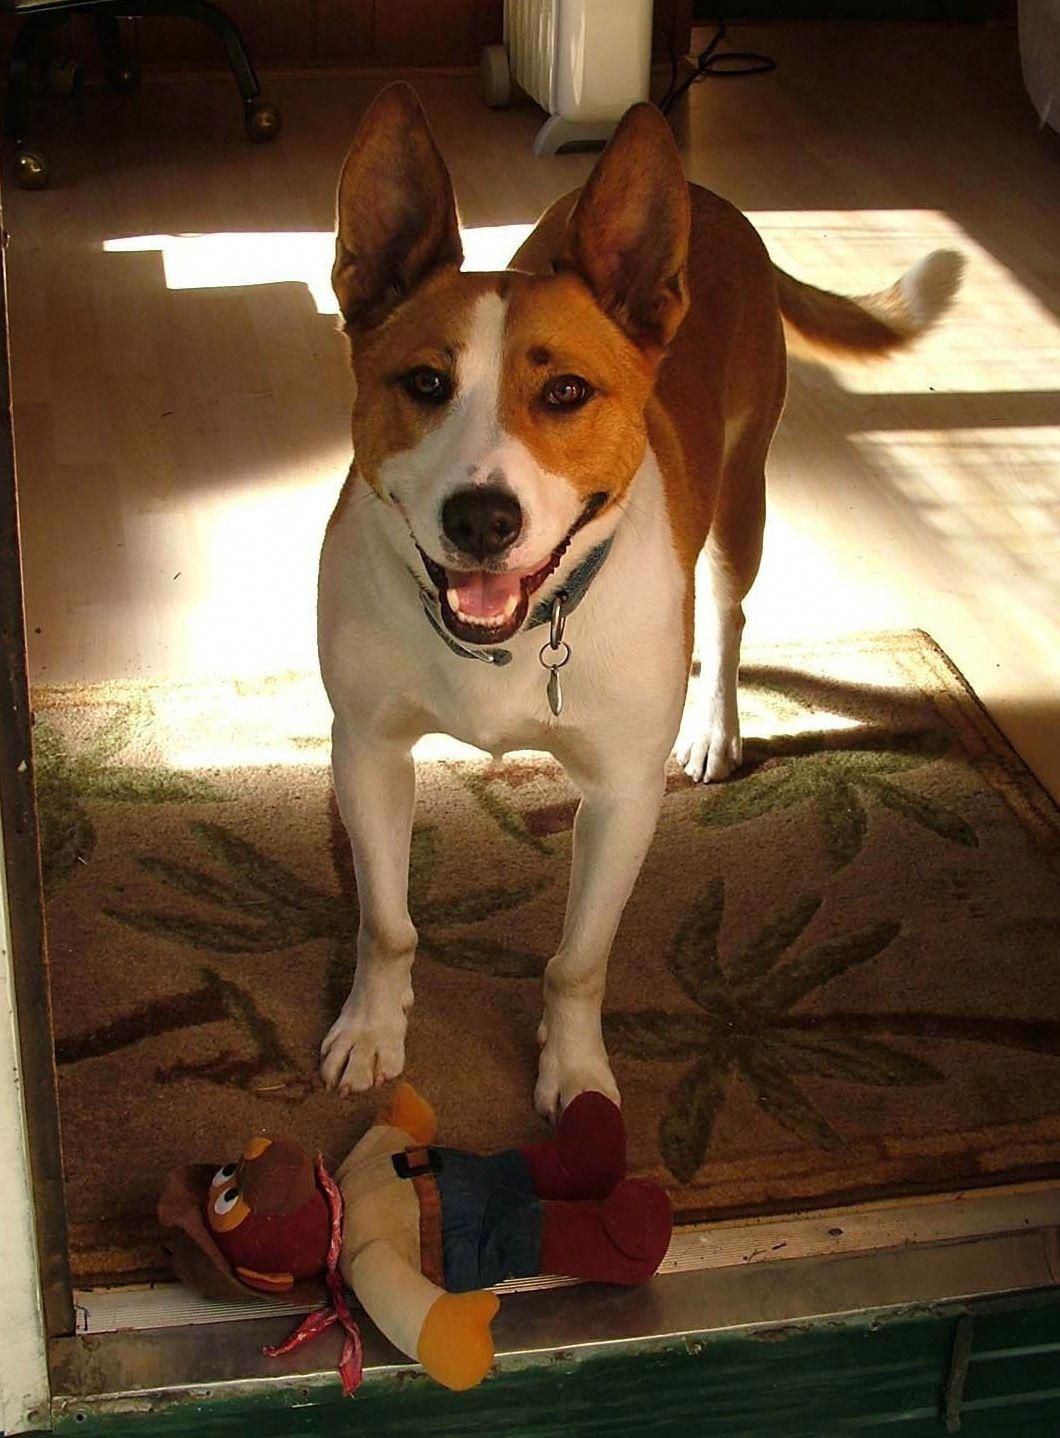 Kona. Basenji / Bull Terrier mix. This is the face that